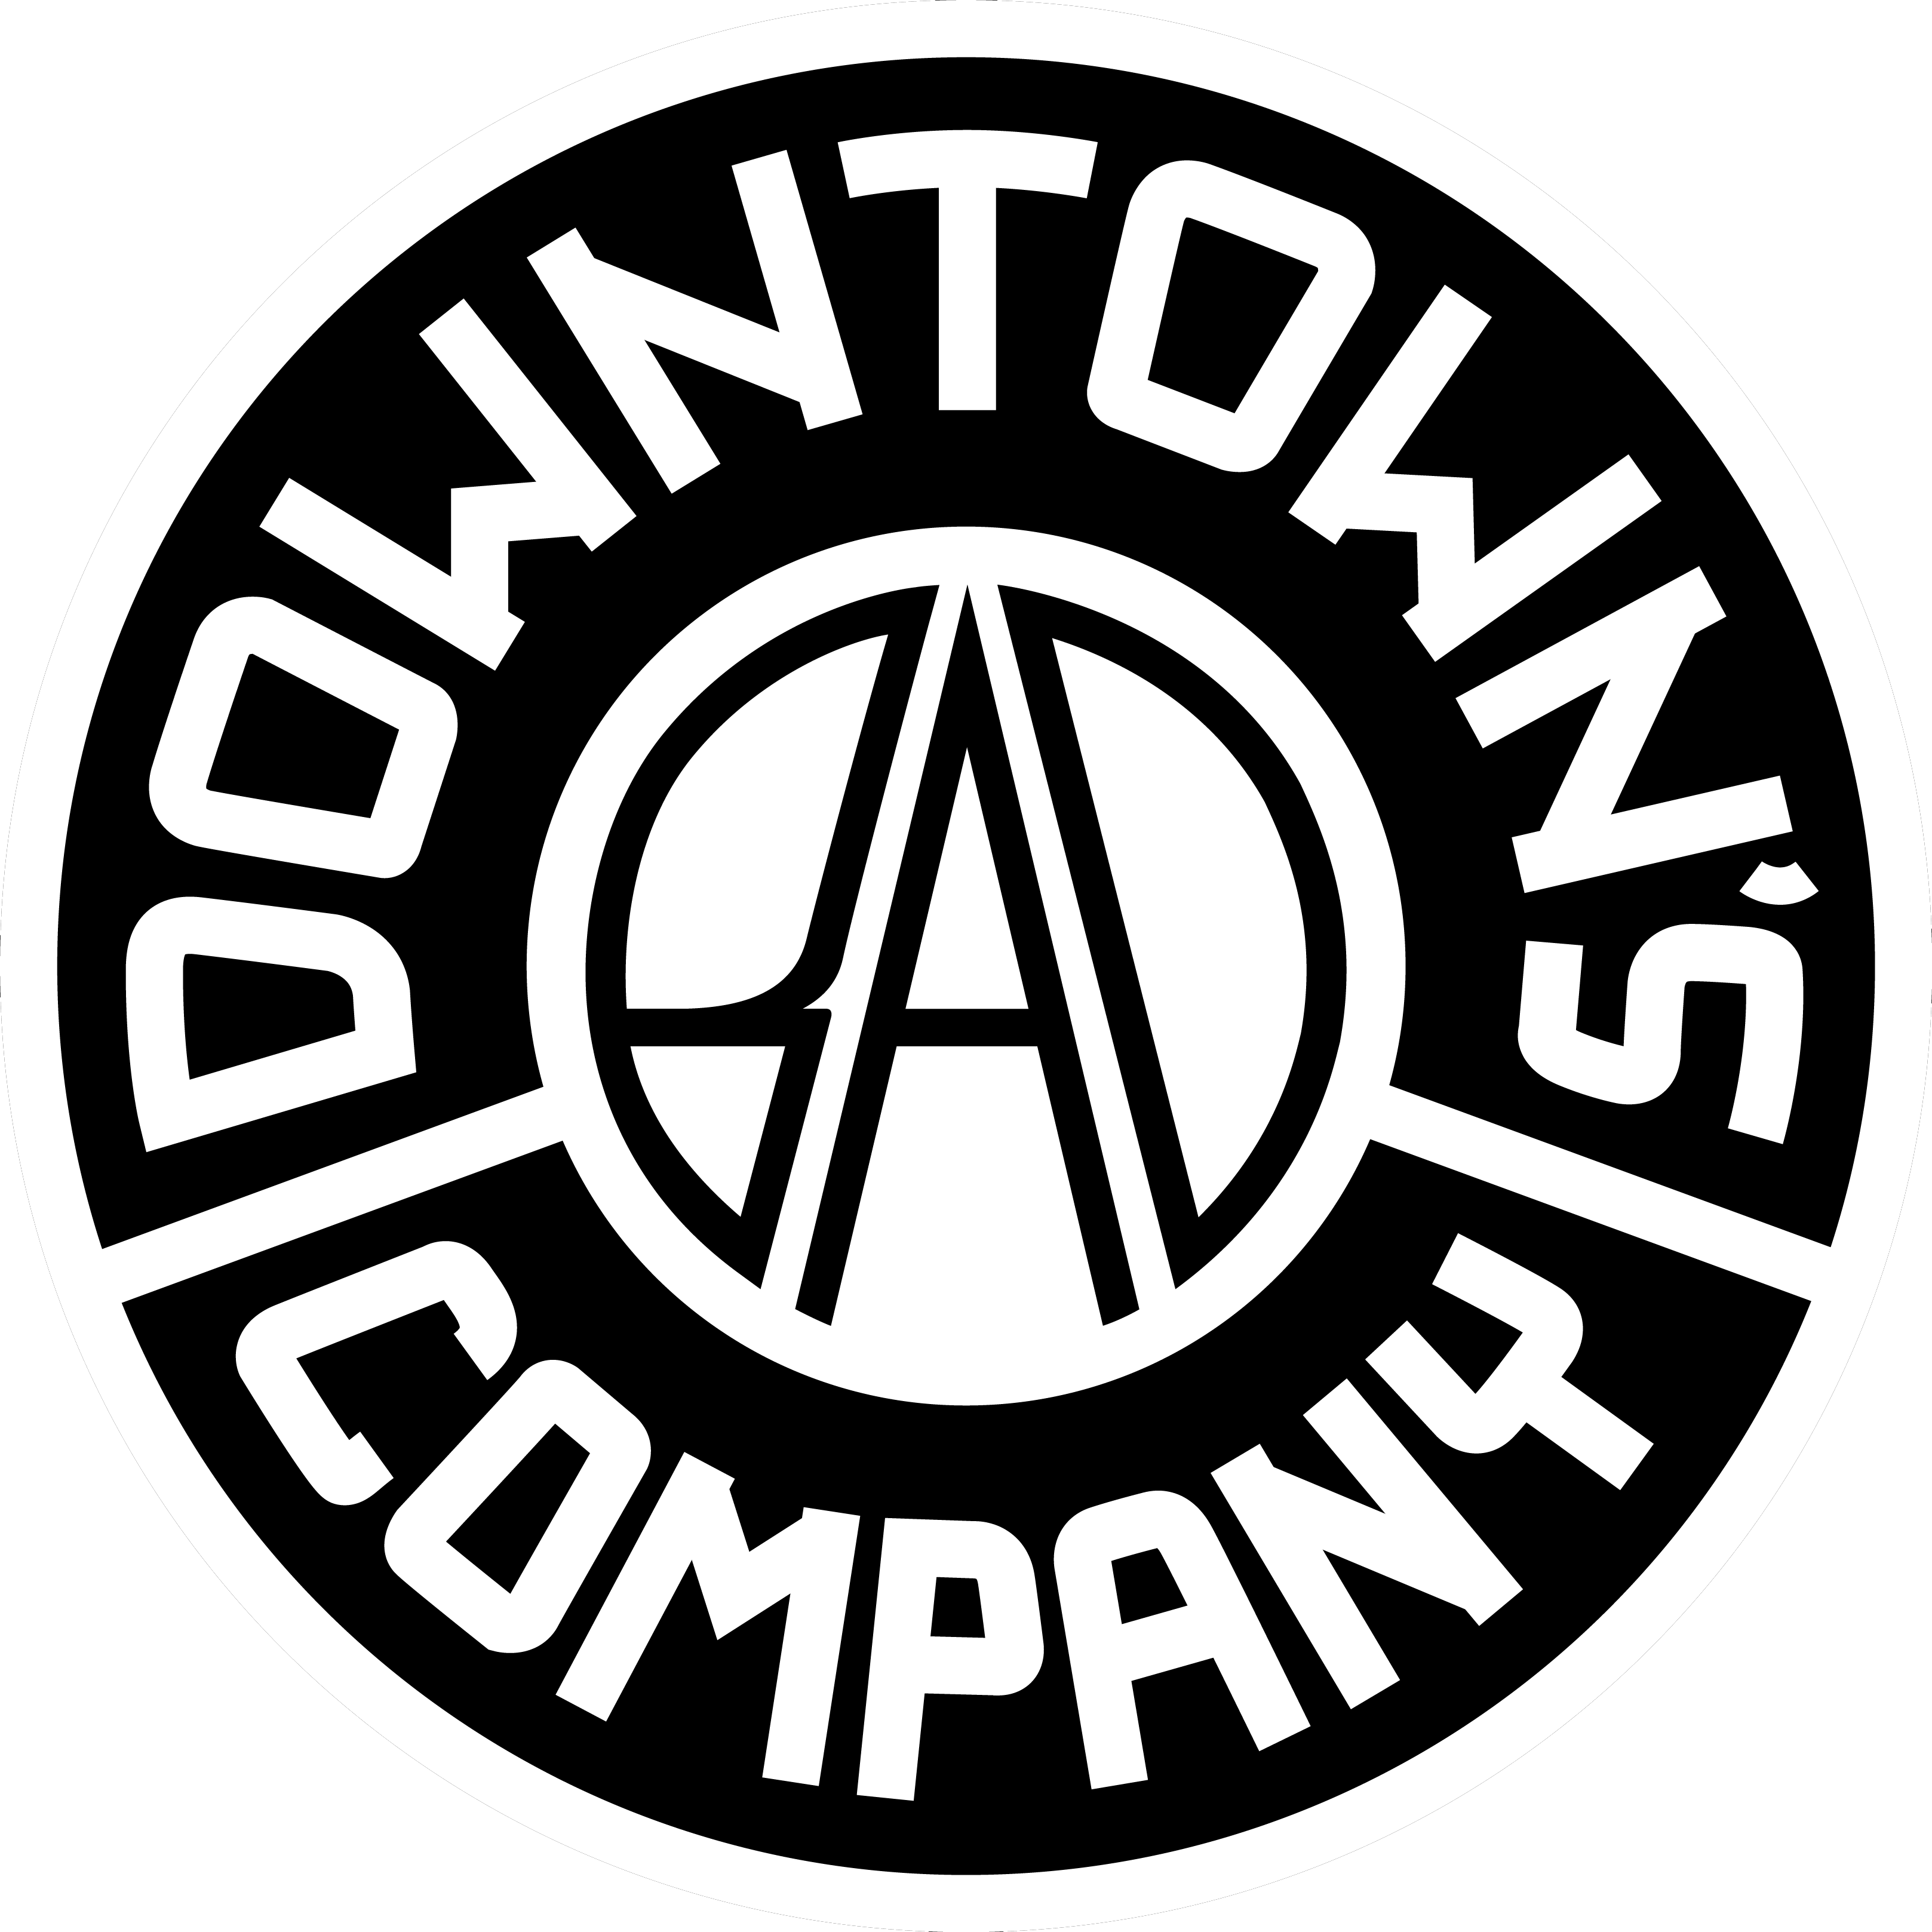 Downtown's Bad Company